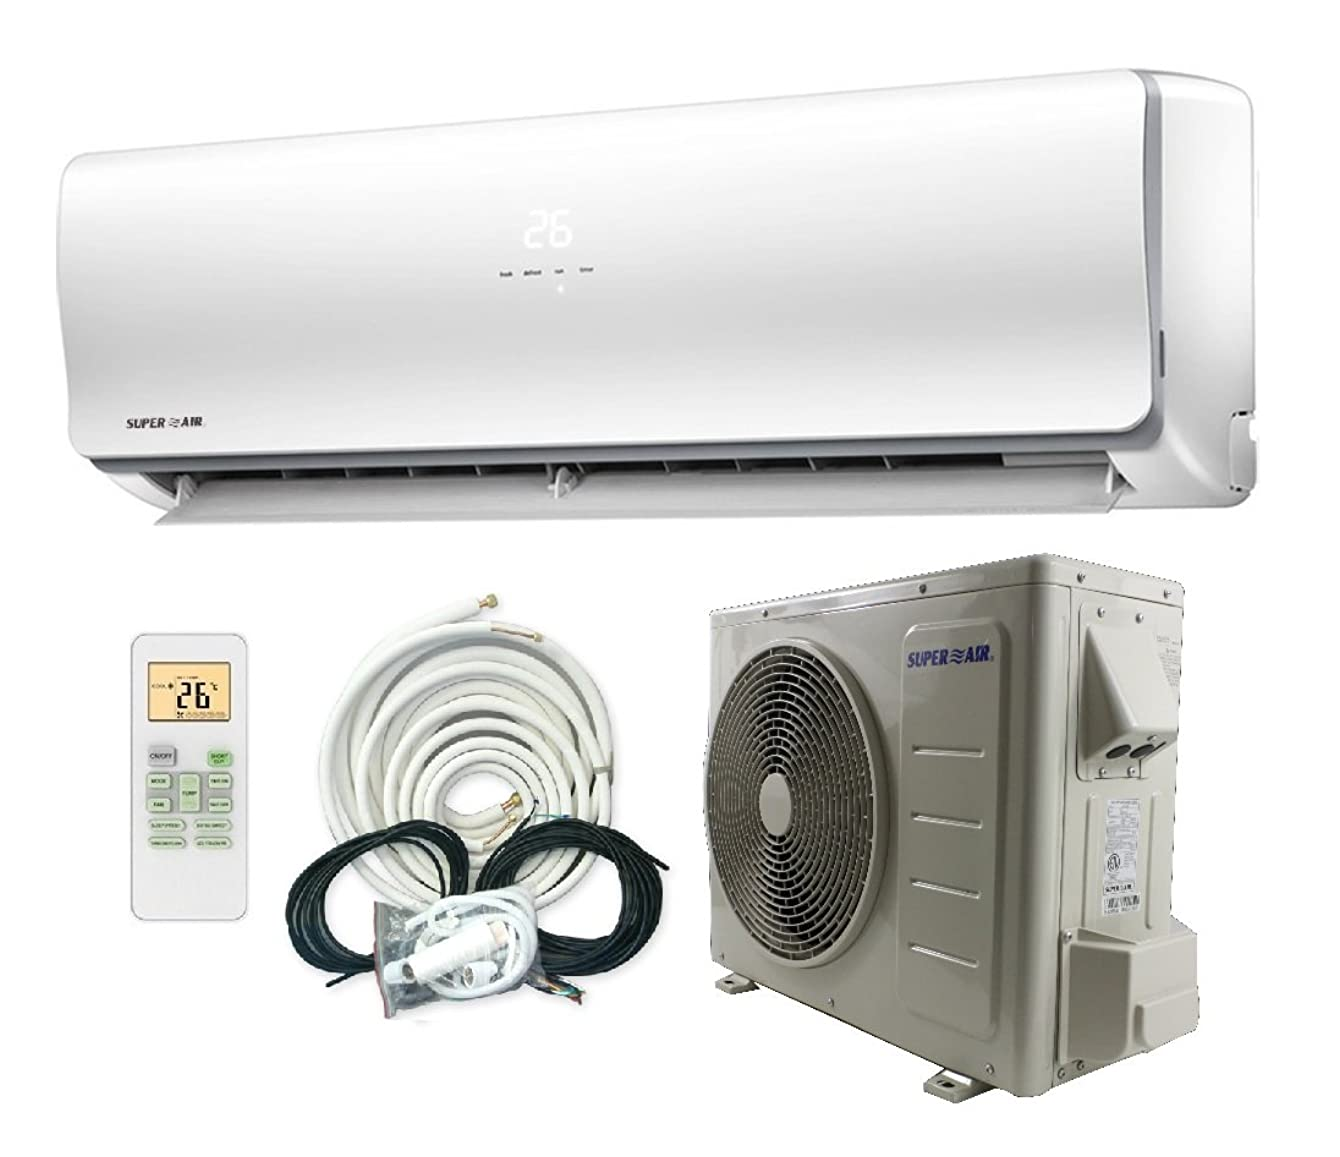 Superair 12000 BTU 22 SEER (1 TON) Ductless Mini Split System Inverter Air Conditioner with Heat Pump 110V - Full Set